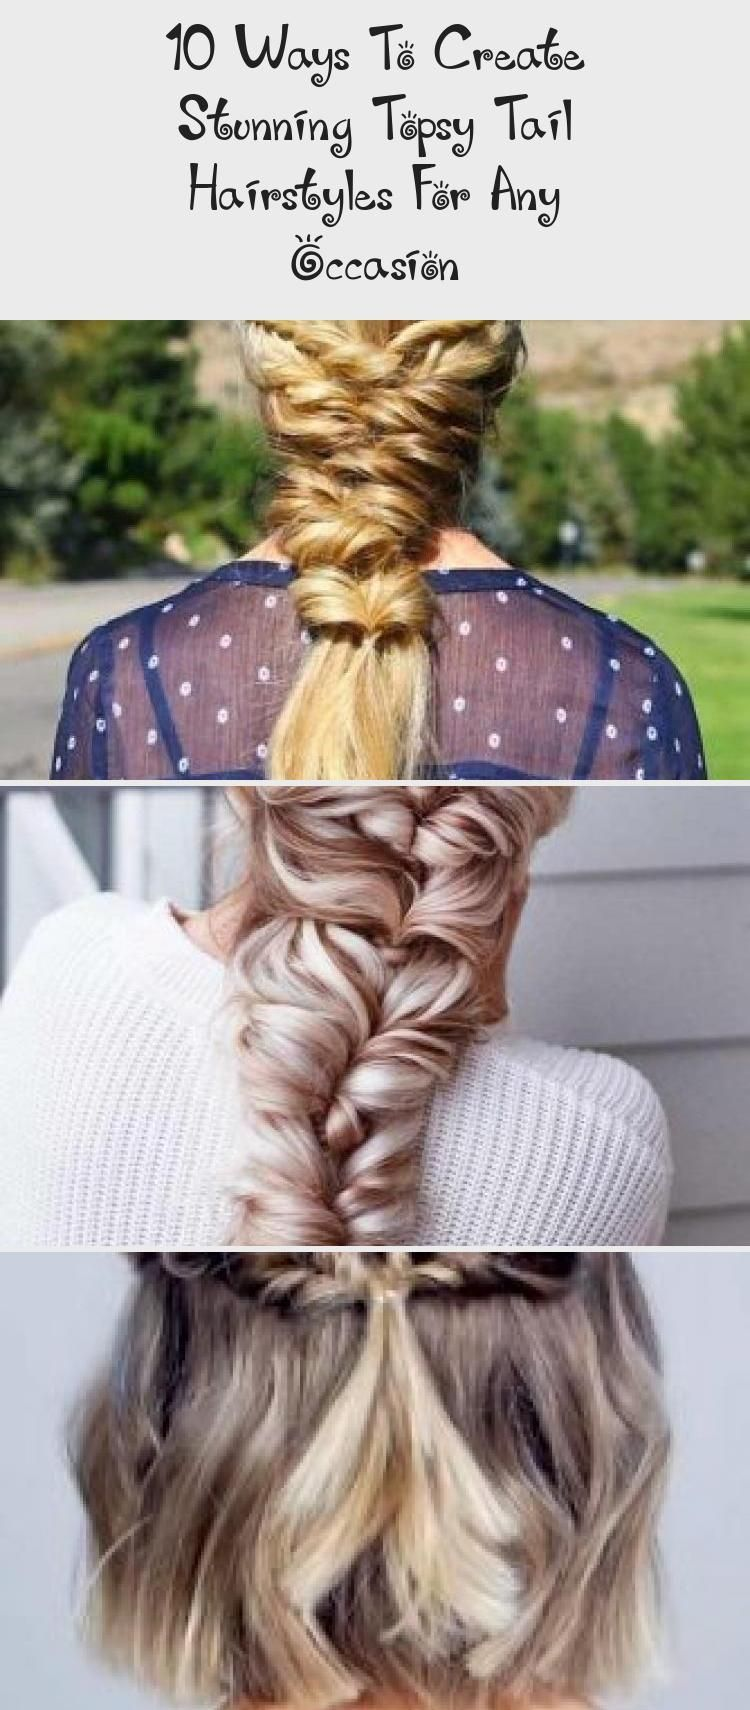 10 ways to create stunning topsy tail hairstyles for any